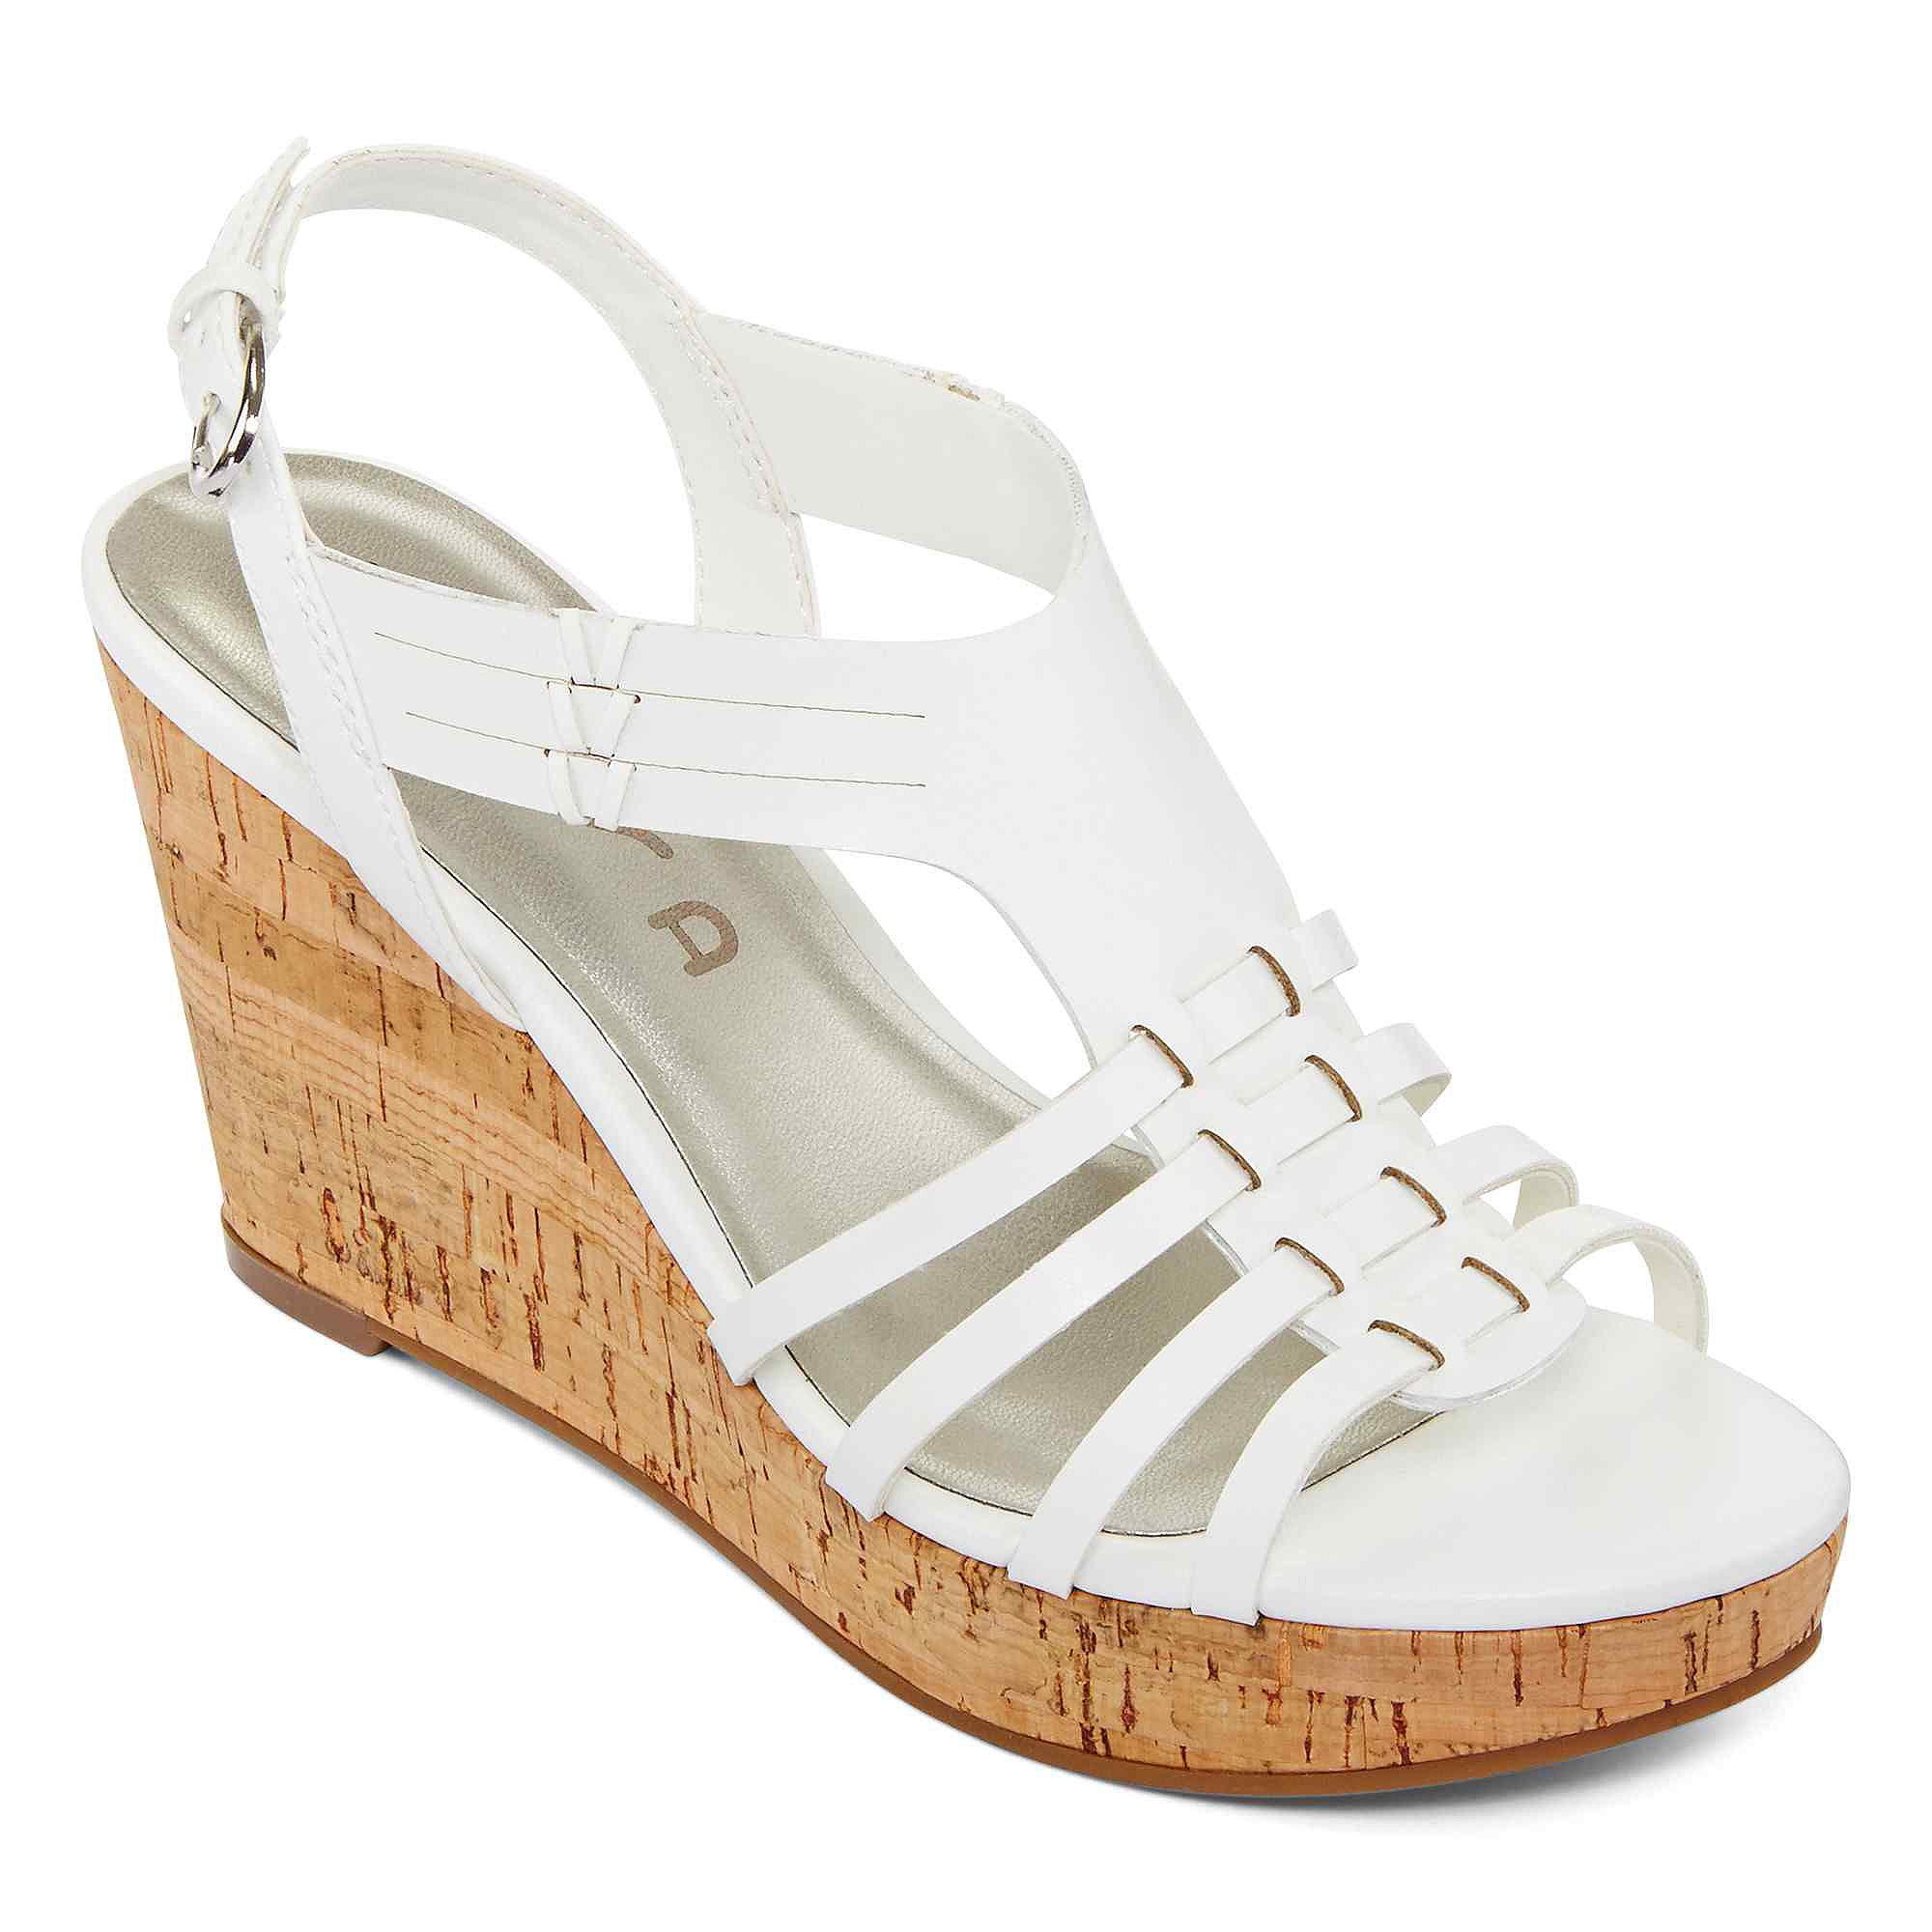 bee8f8719cf UPC 883830964670 product image for Unisa Kayjayy Cork Wedge Sandals